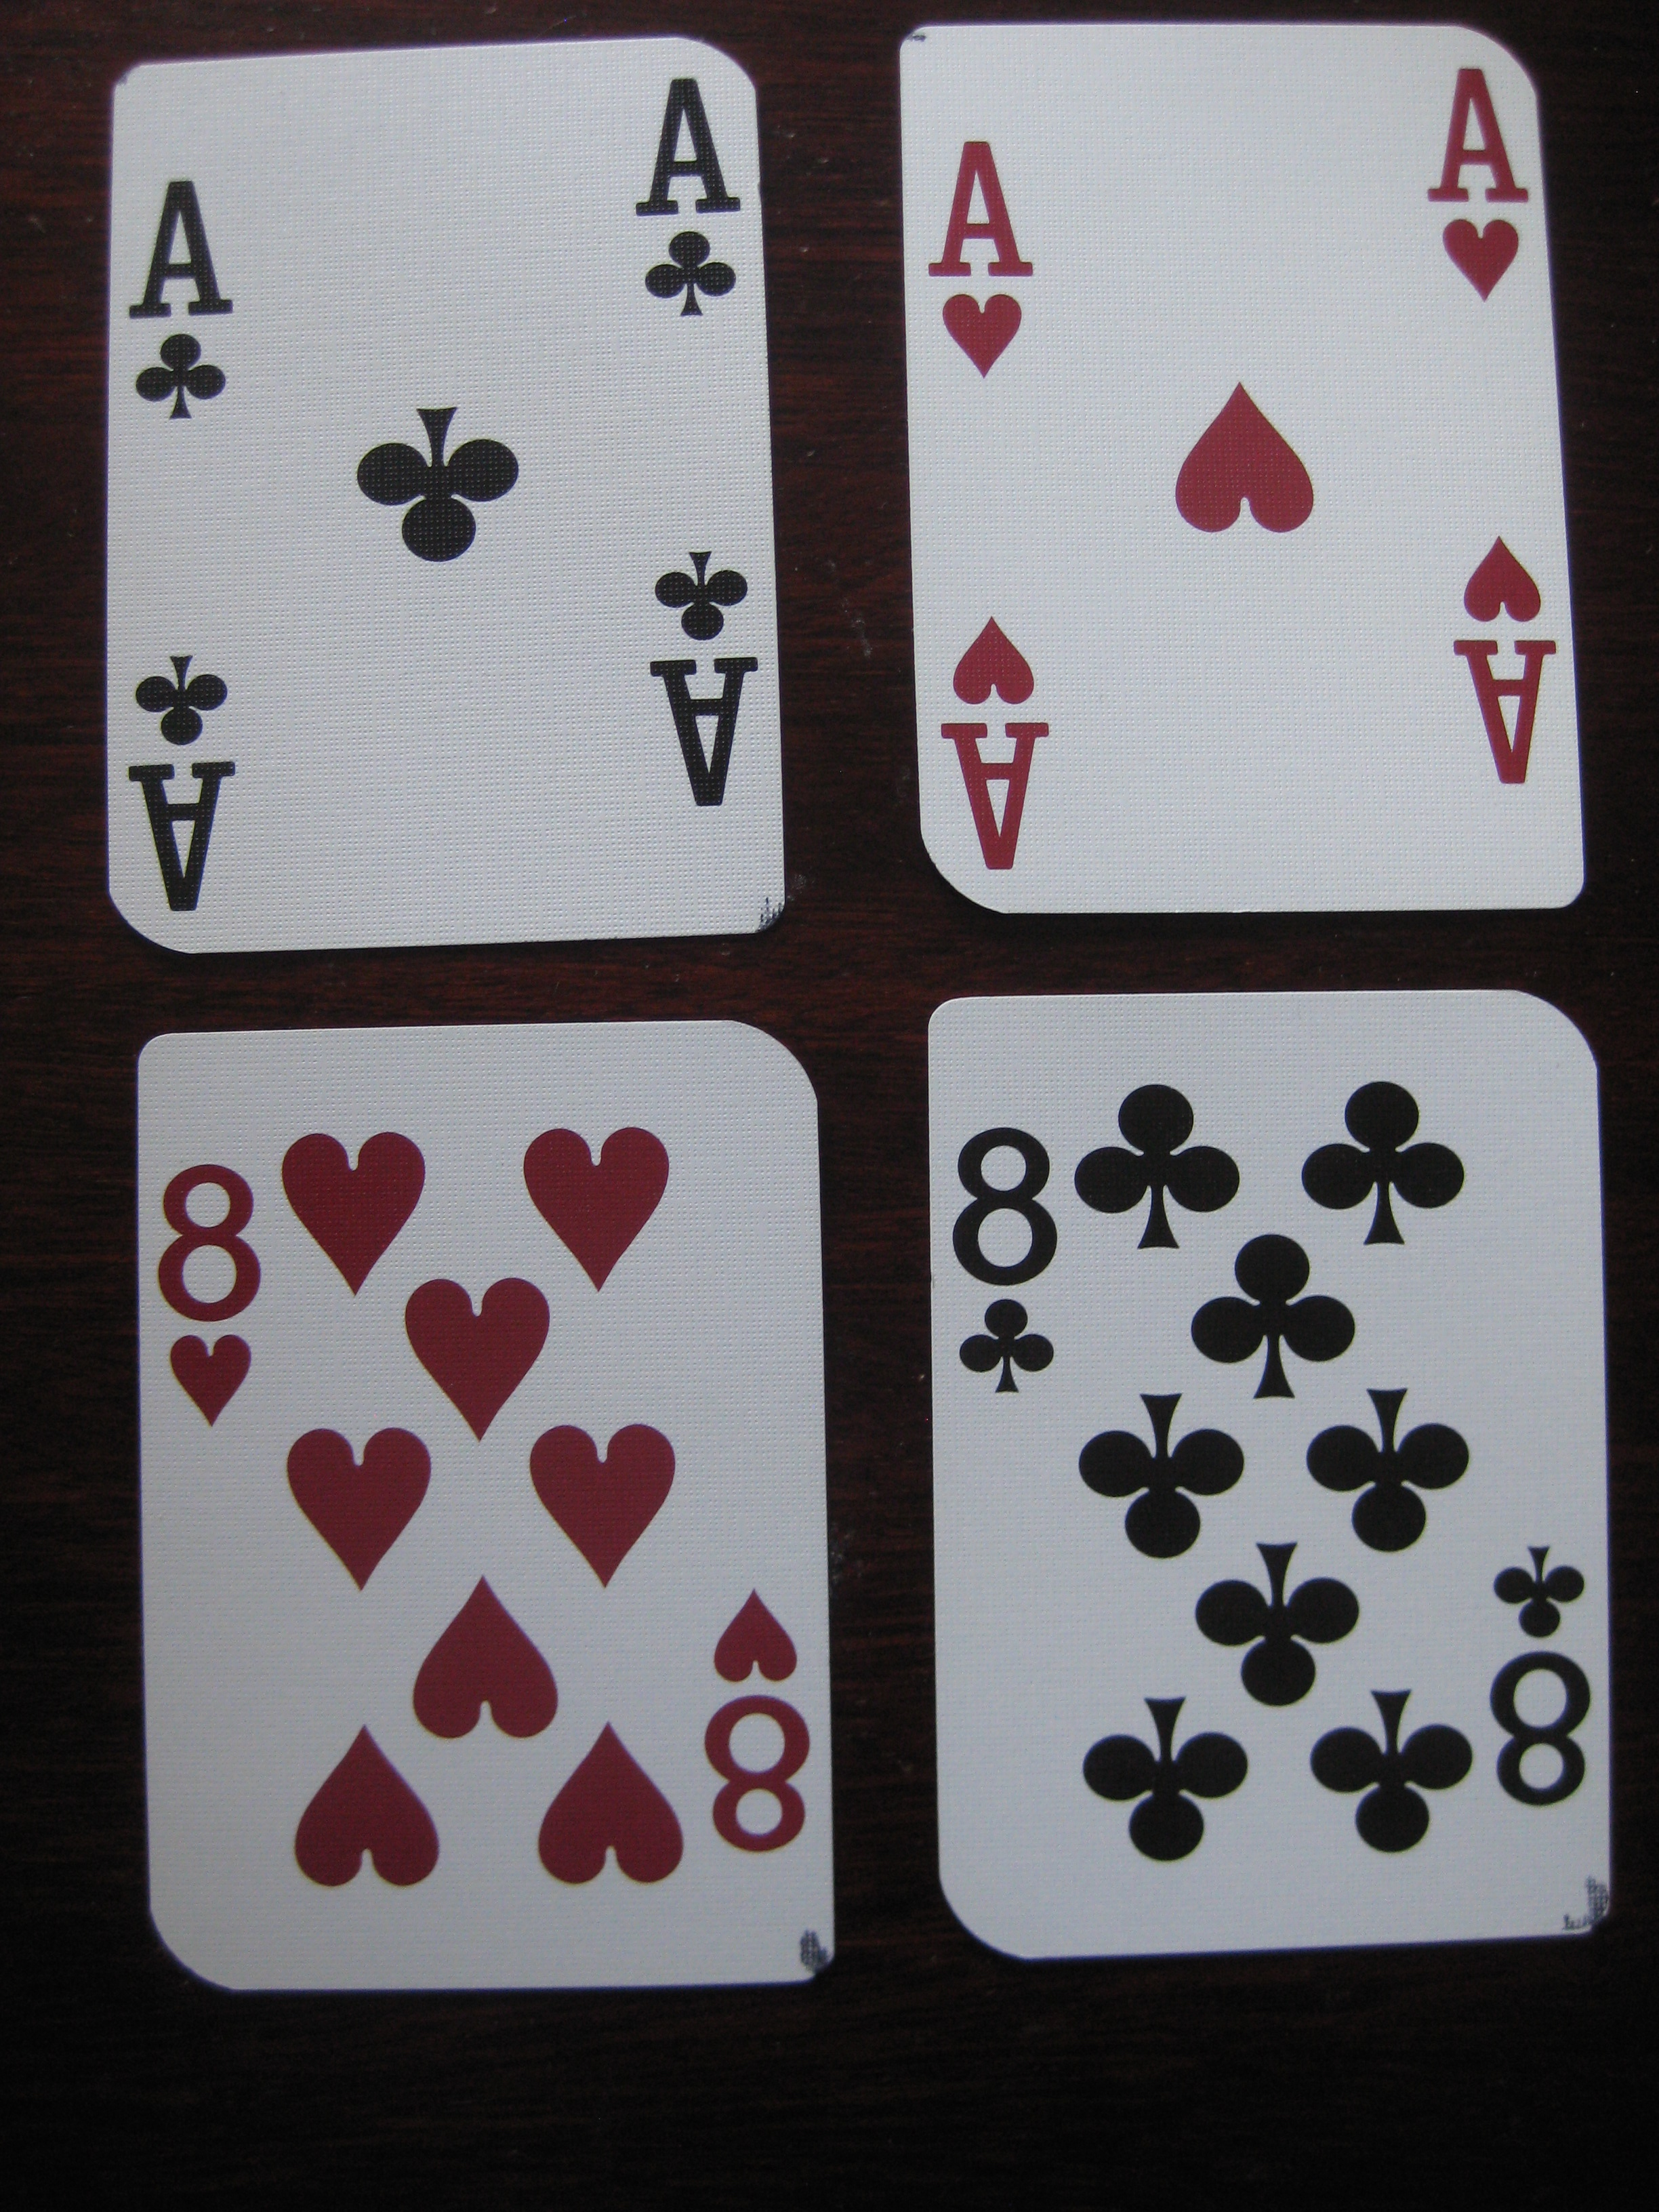 split aces blackjack